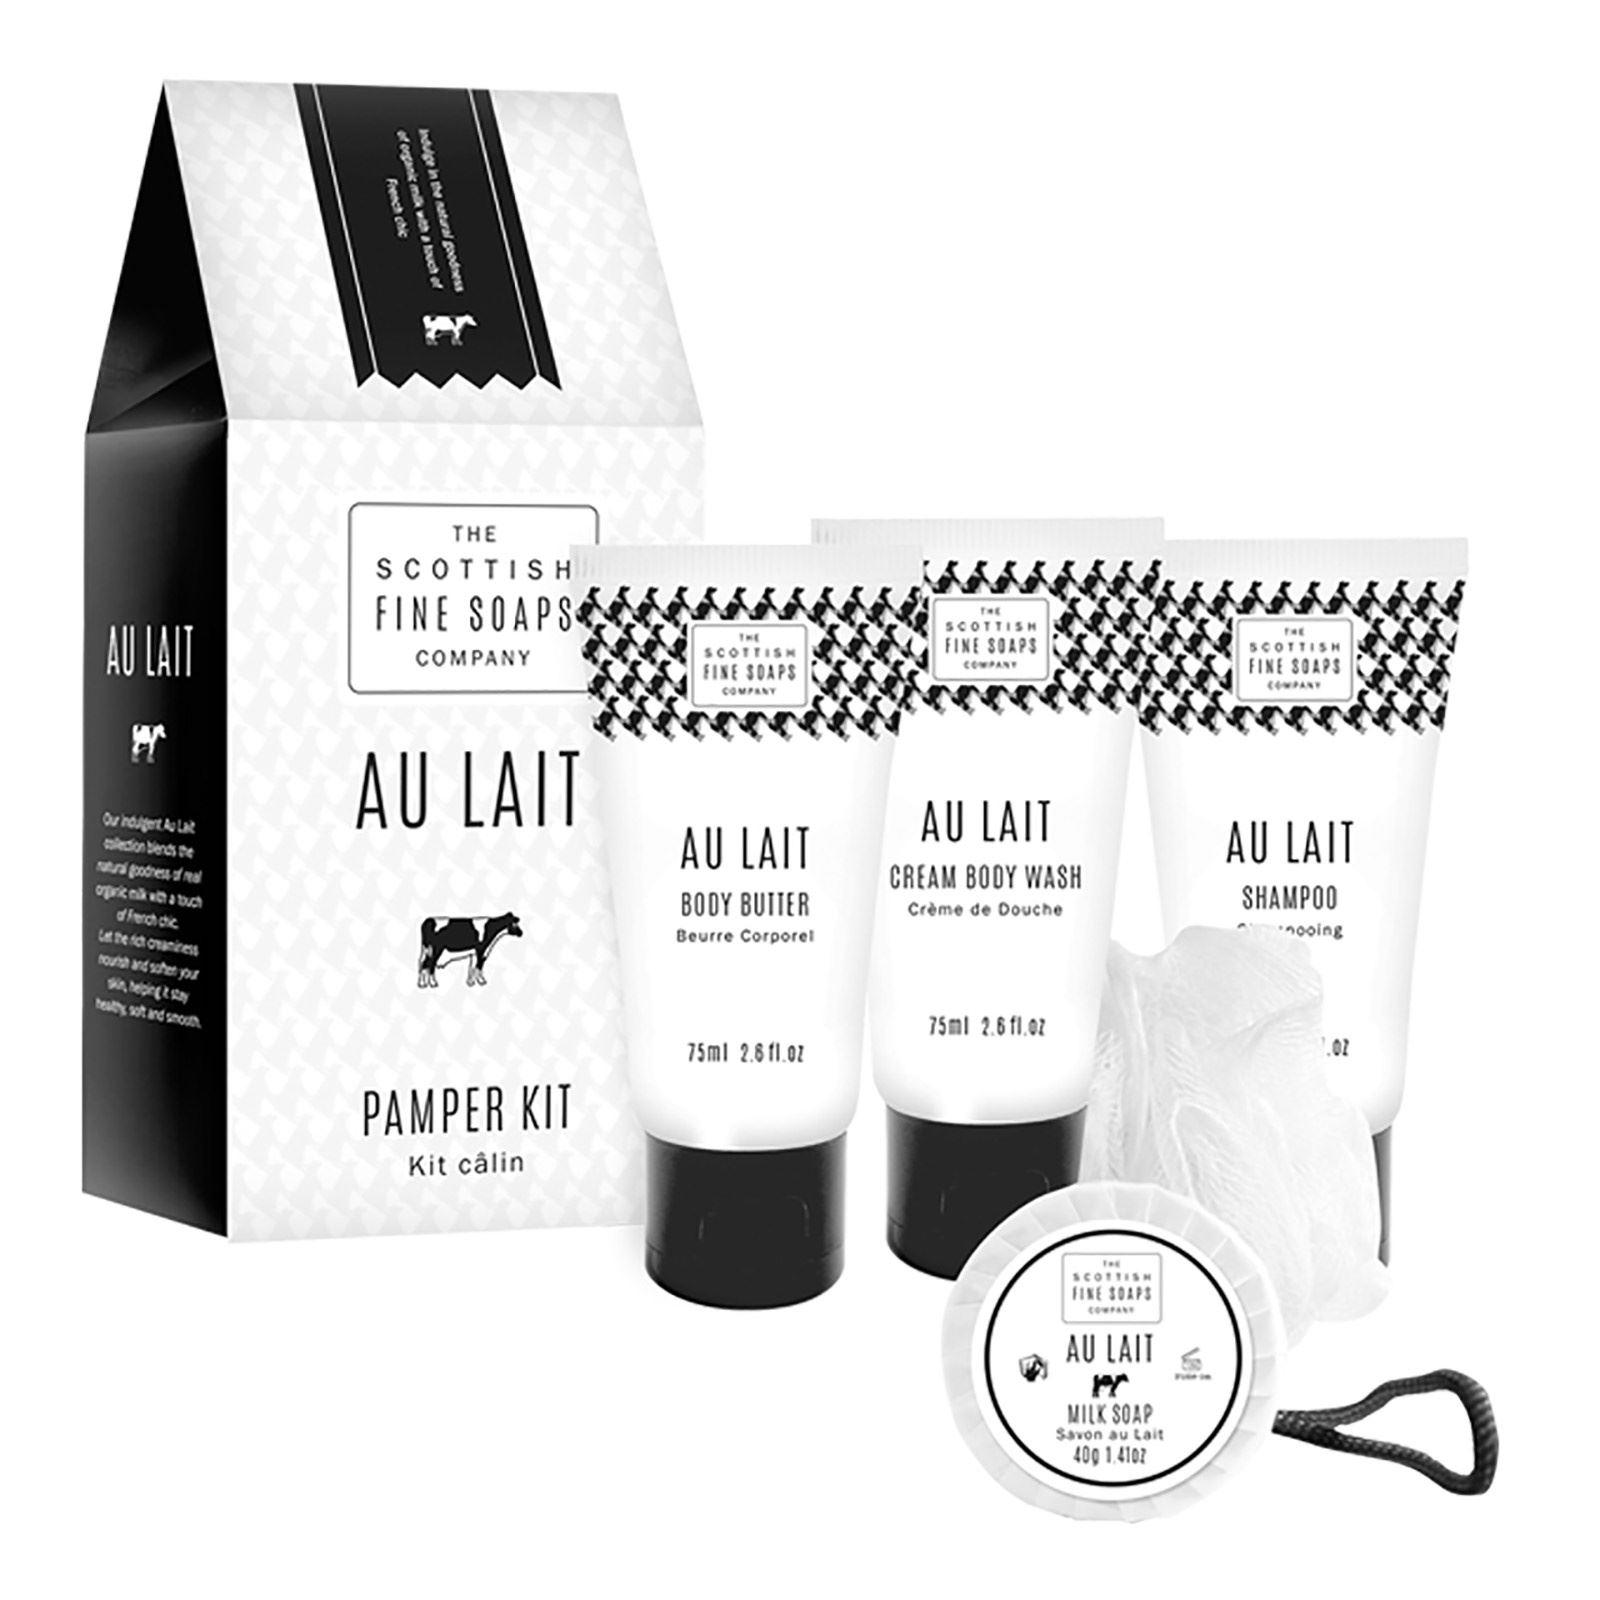 Scottish Fine Soaps Au Lait Pamper Kit Gift Set